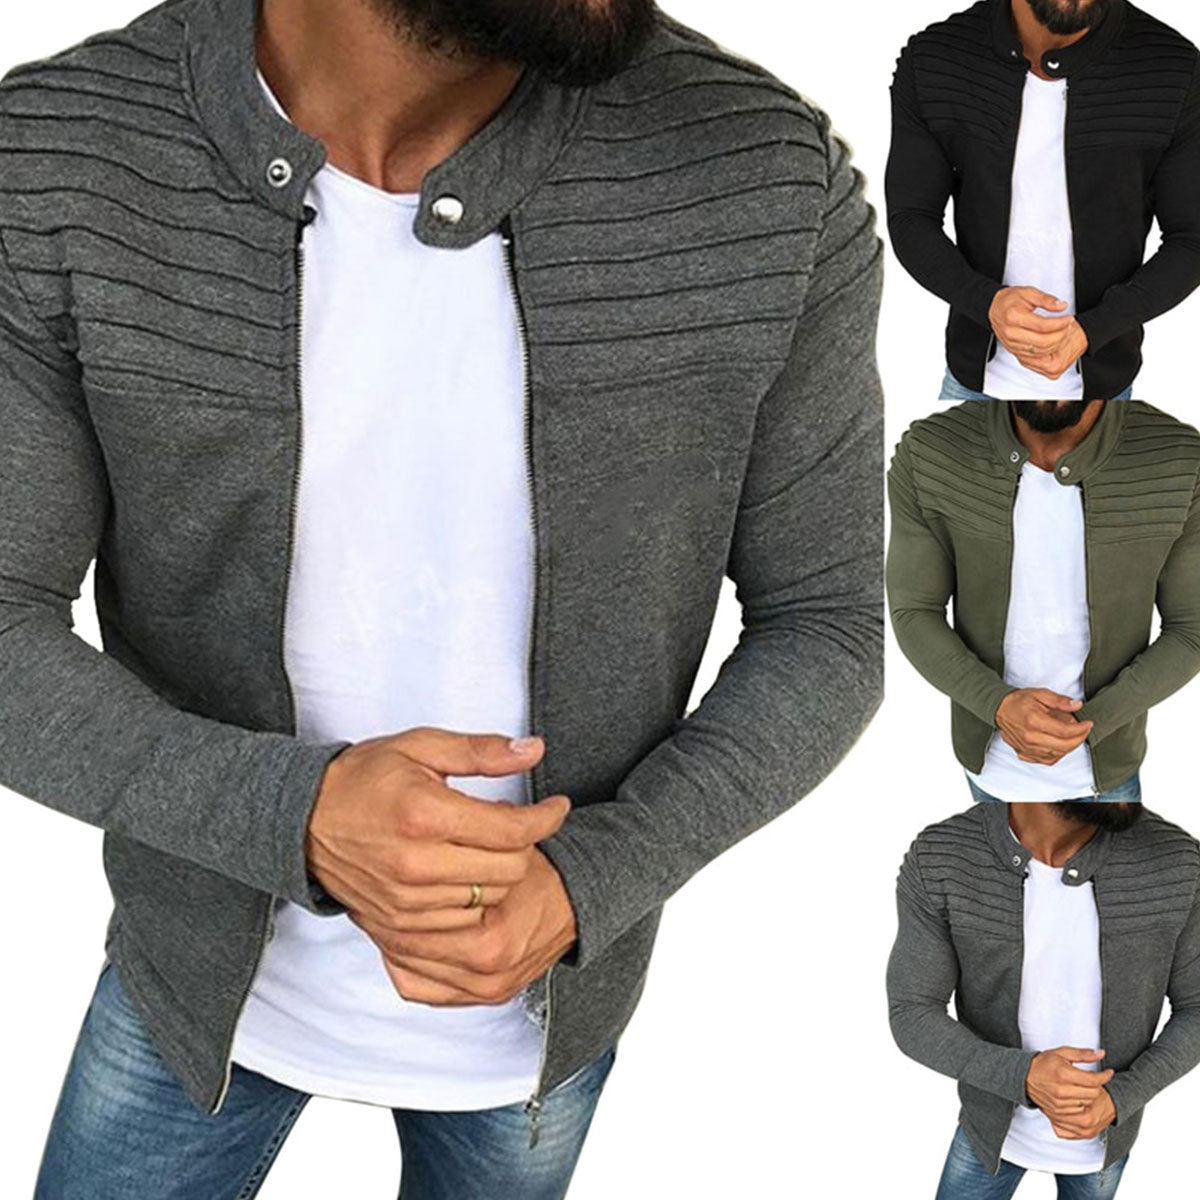 Modern Design Full Zip-Up Bomber Jacket Made of Durable Polyester